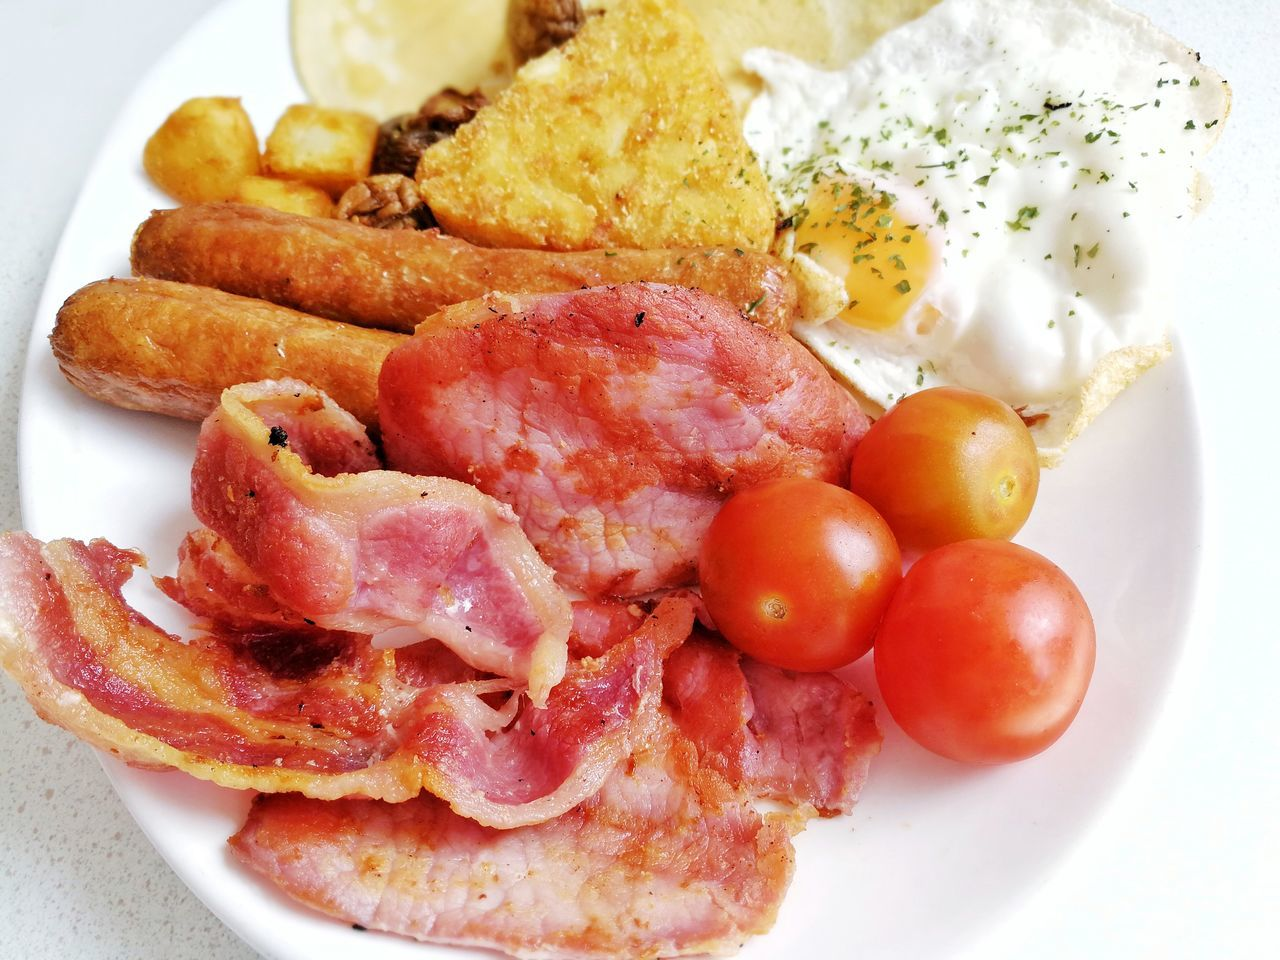 Food Food And Drink Plate Ready-to-eat No People Prepared Potato Healthy Eating Serving Size Freshness Meat Close-up Indoors  Day Breakfast English Breakfast